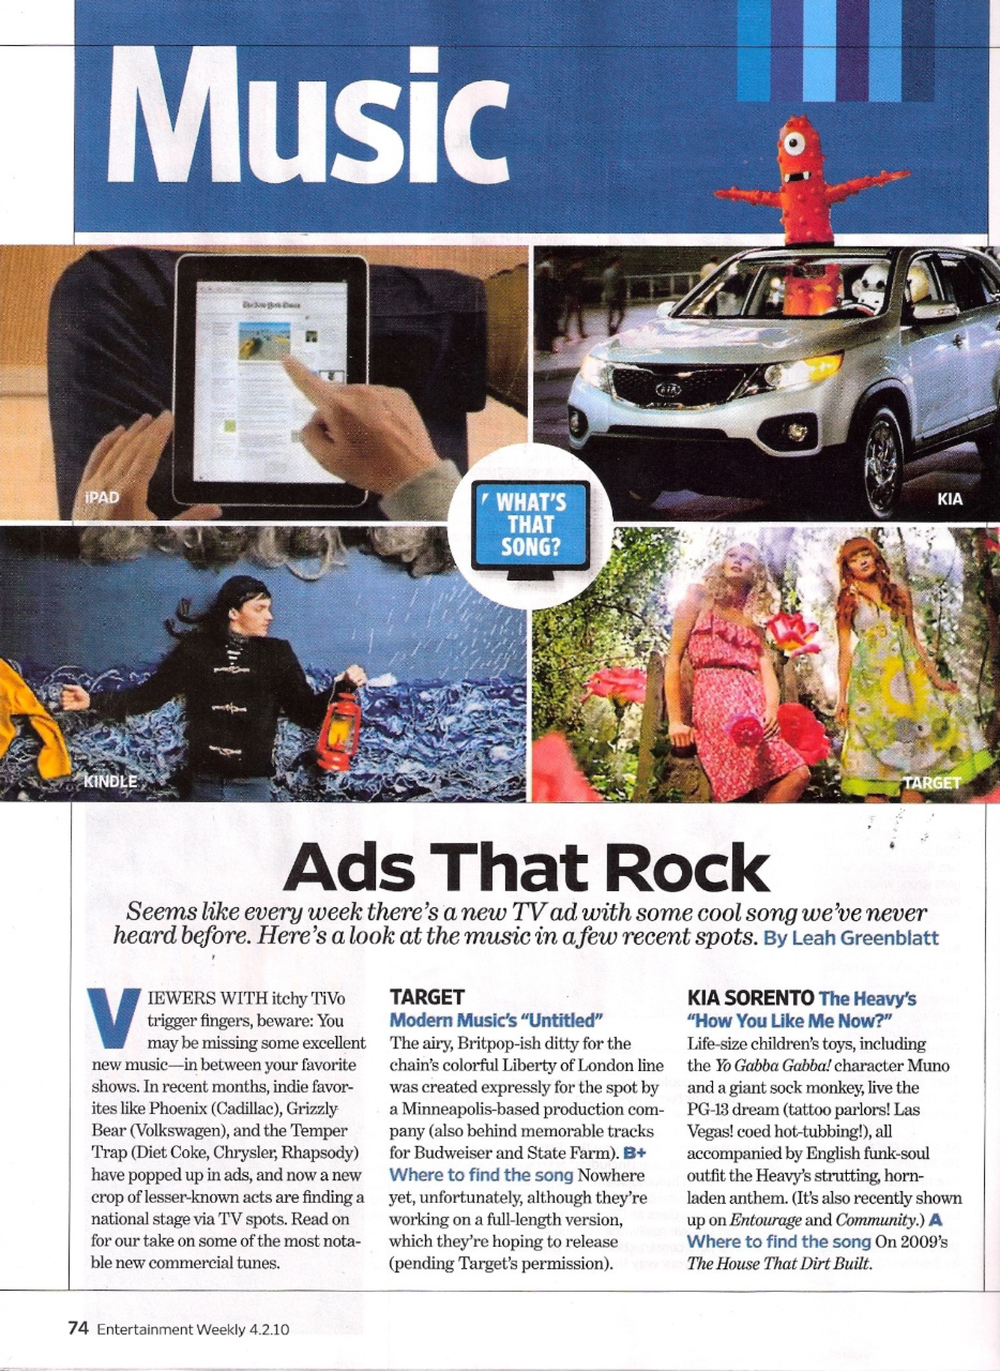 Entertainment Weekly Apr 2-2010 Ads That Rock-1.jpg